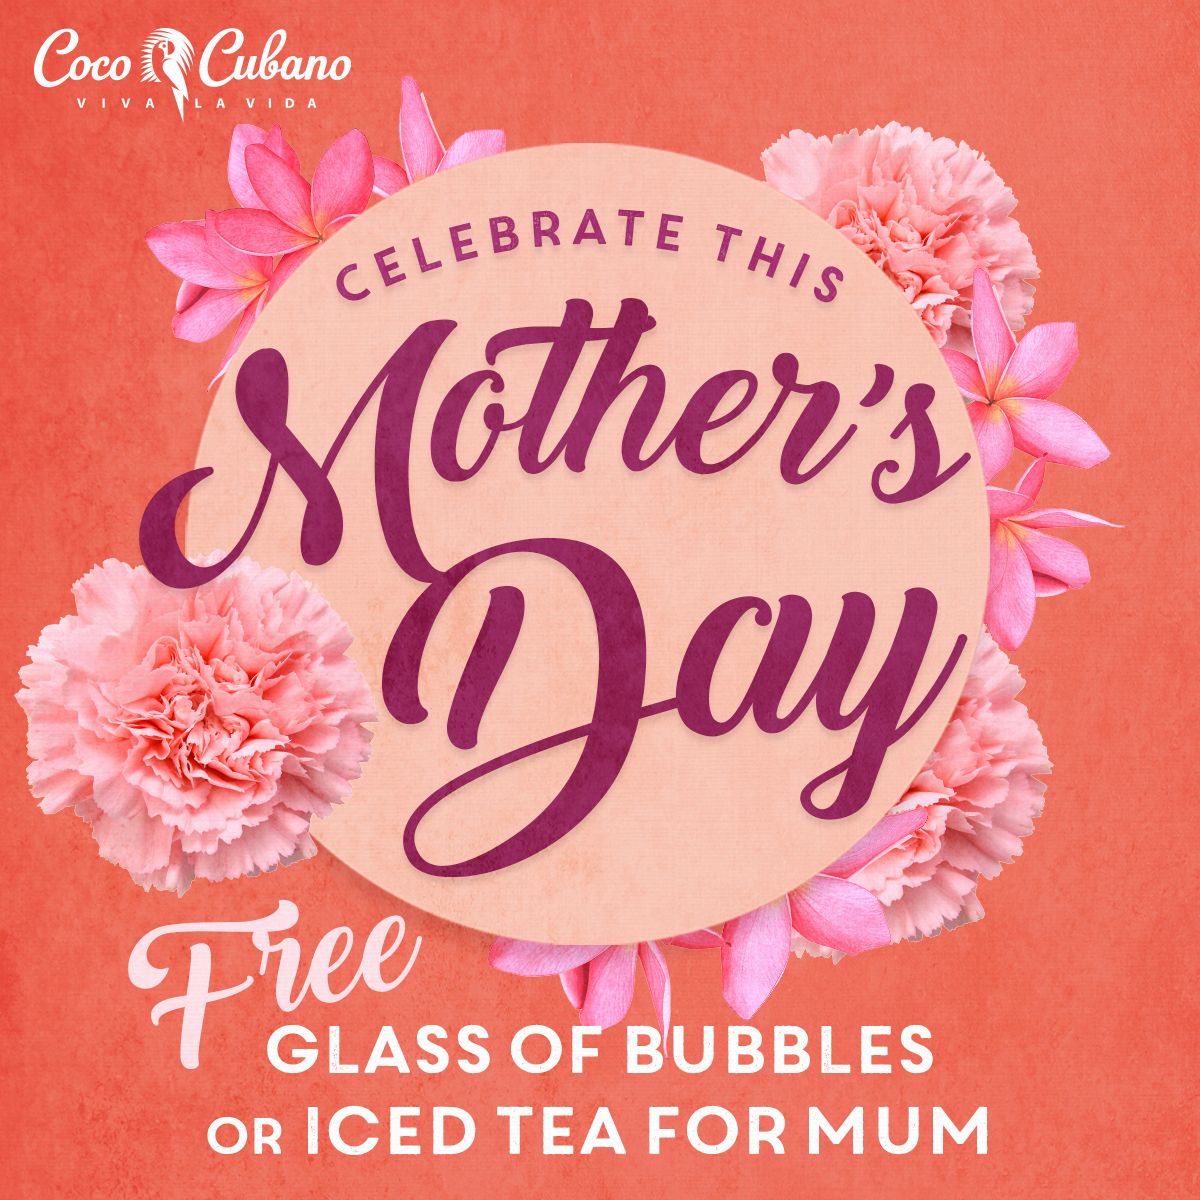 CocoCubano-MothersDay2019-1200x1200.jpg